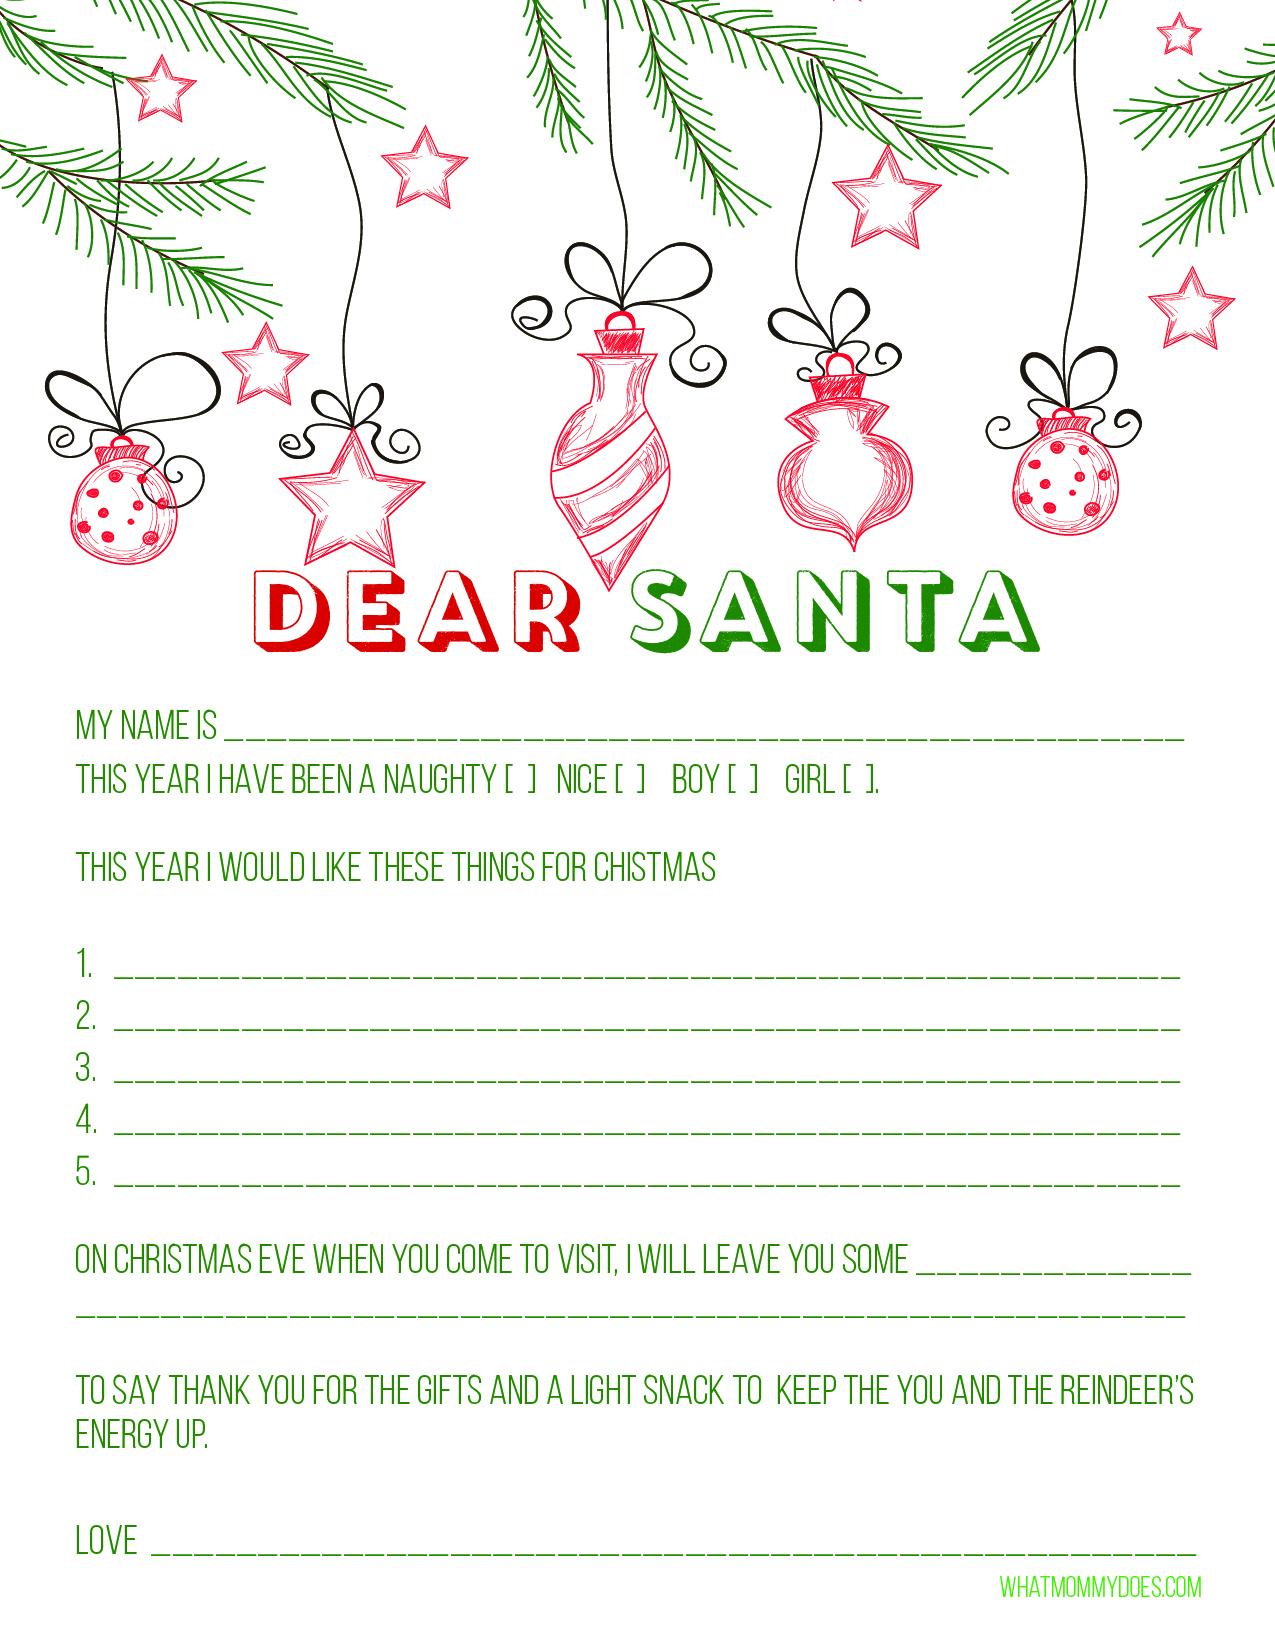 how to mail a letter to santa clause